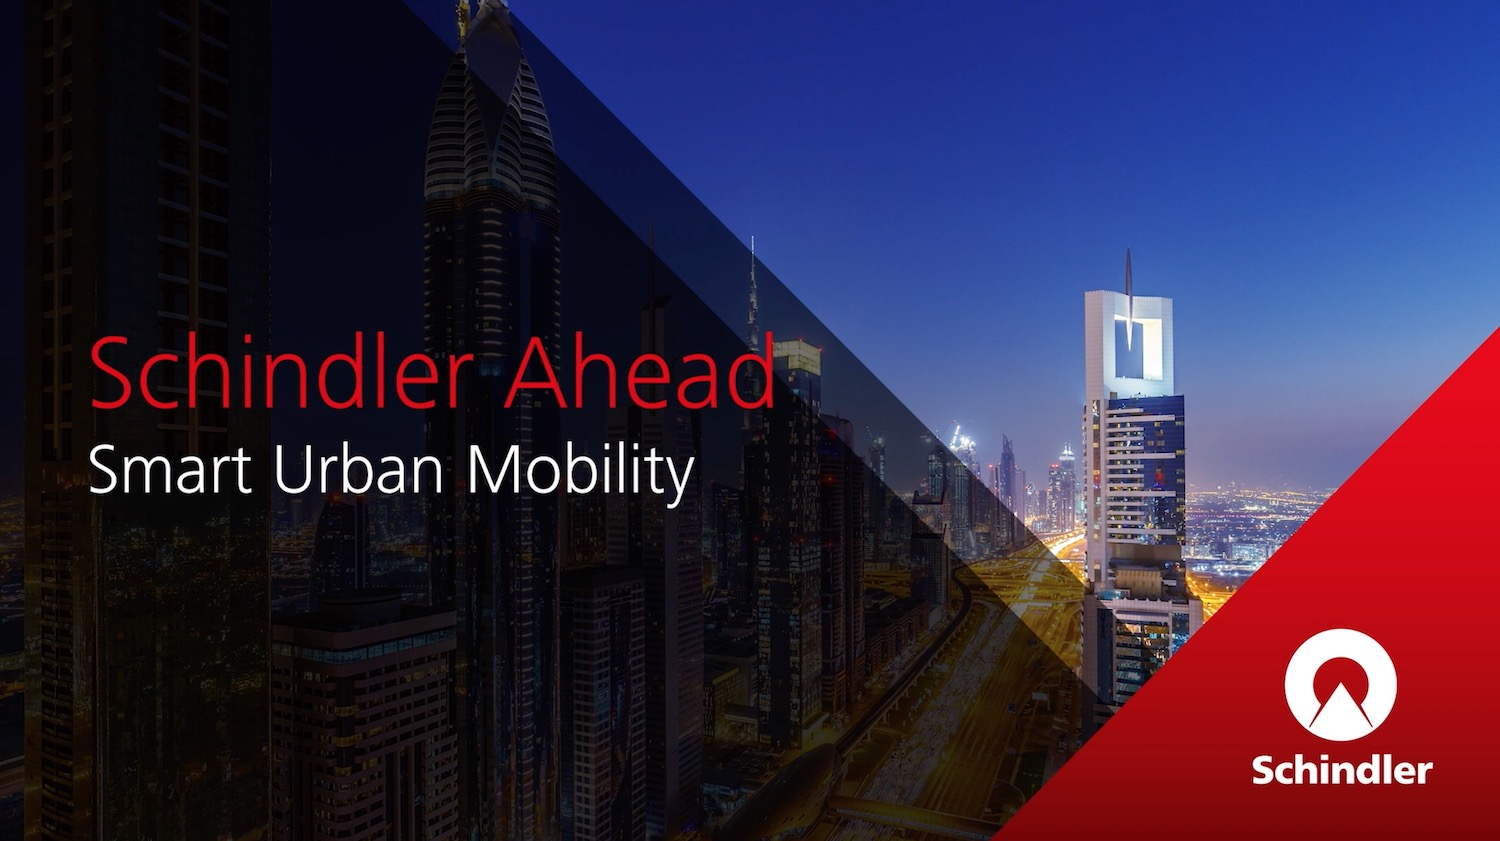 Schinder Ahead | Smart Urban Mobility